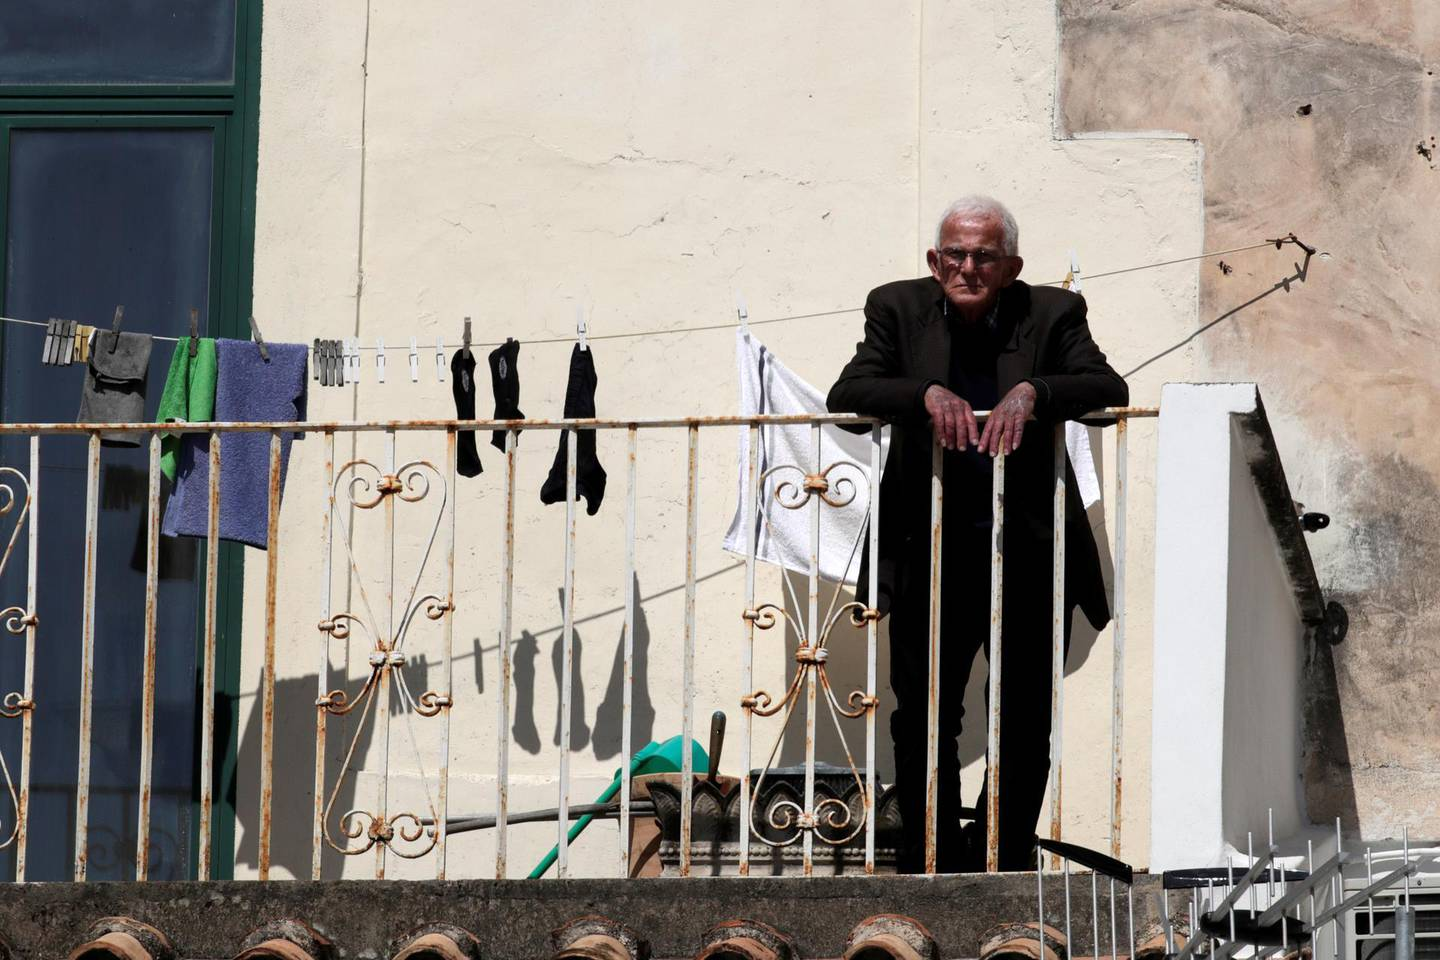 A man is seen on a balcony as Italy remains under a nationwide lockdown in a government decree that orders Italians to stay at home, in Amalfi, Italy, March 19, 2020. REUTERS/Ciro De Luca